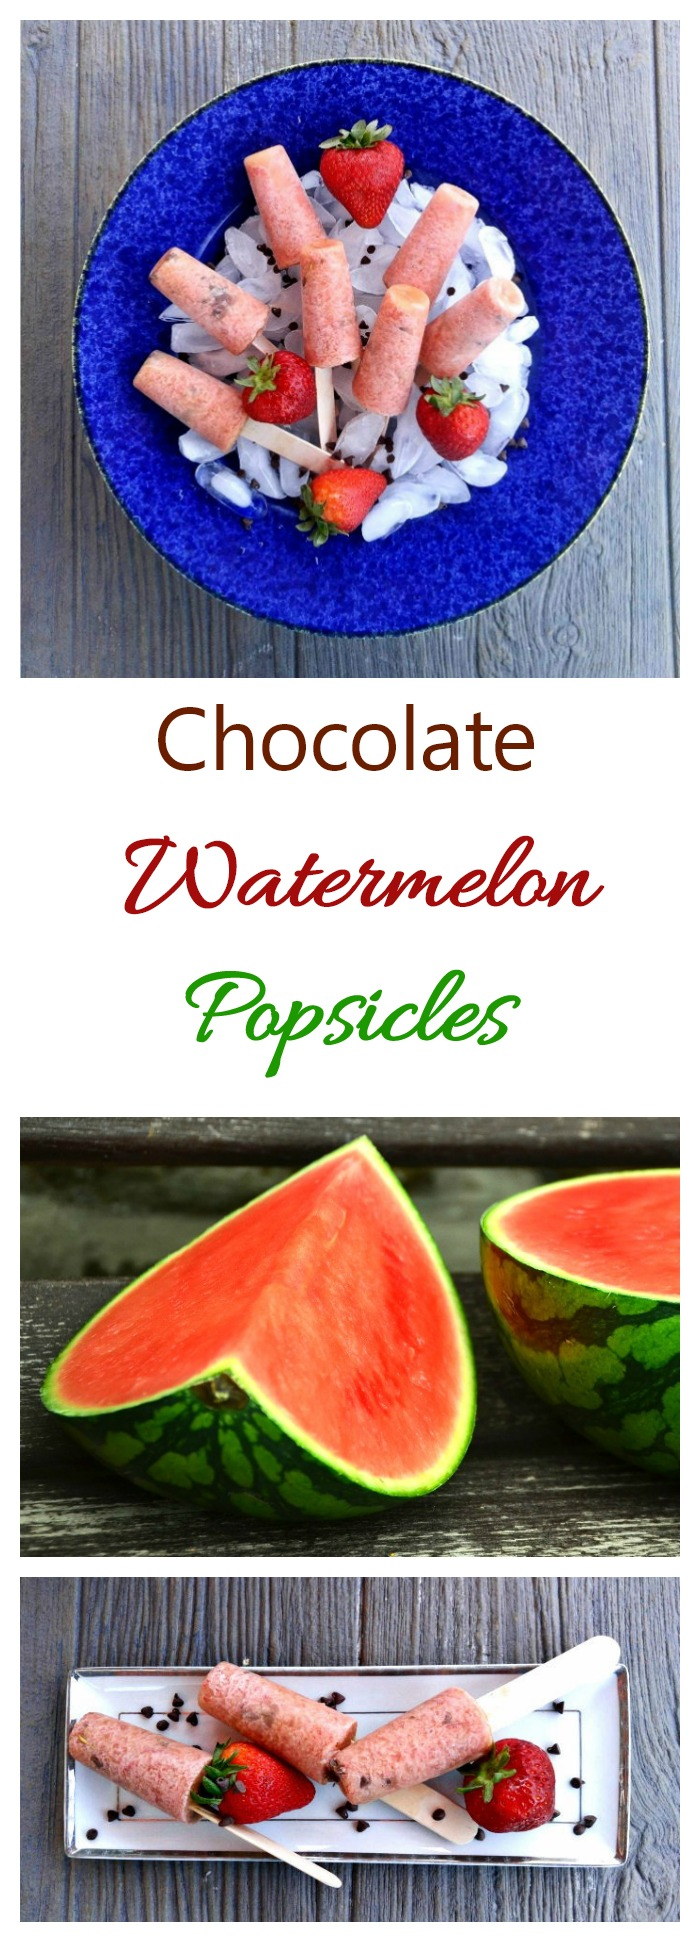 Chocolate Watermelon Popsicles